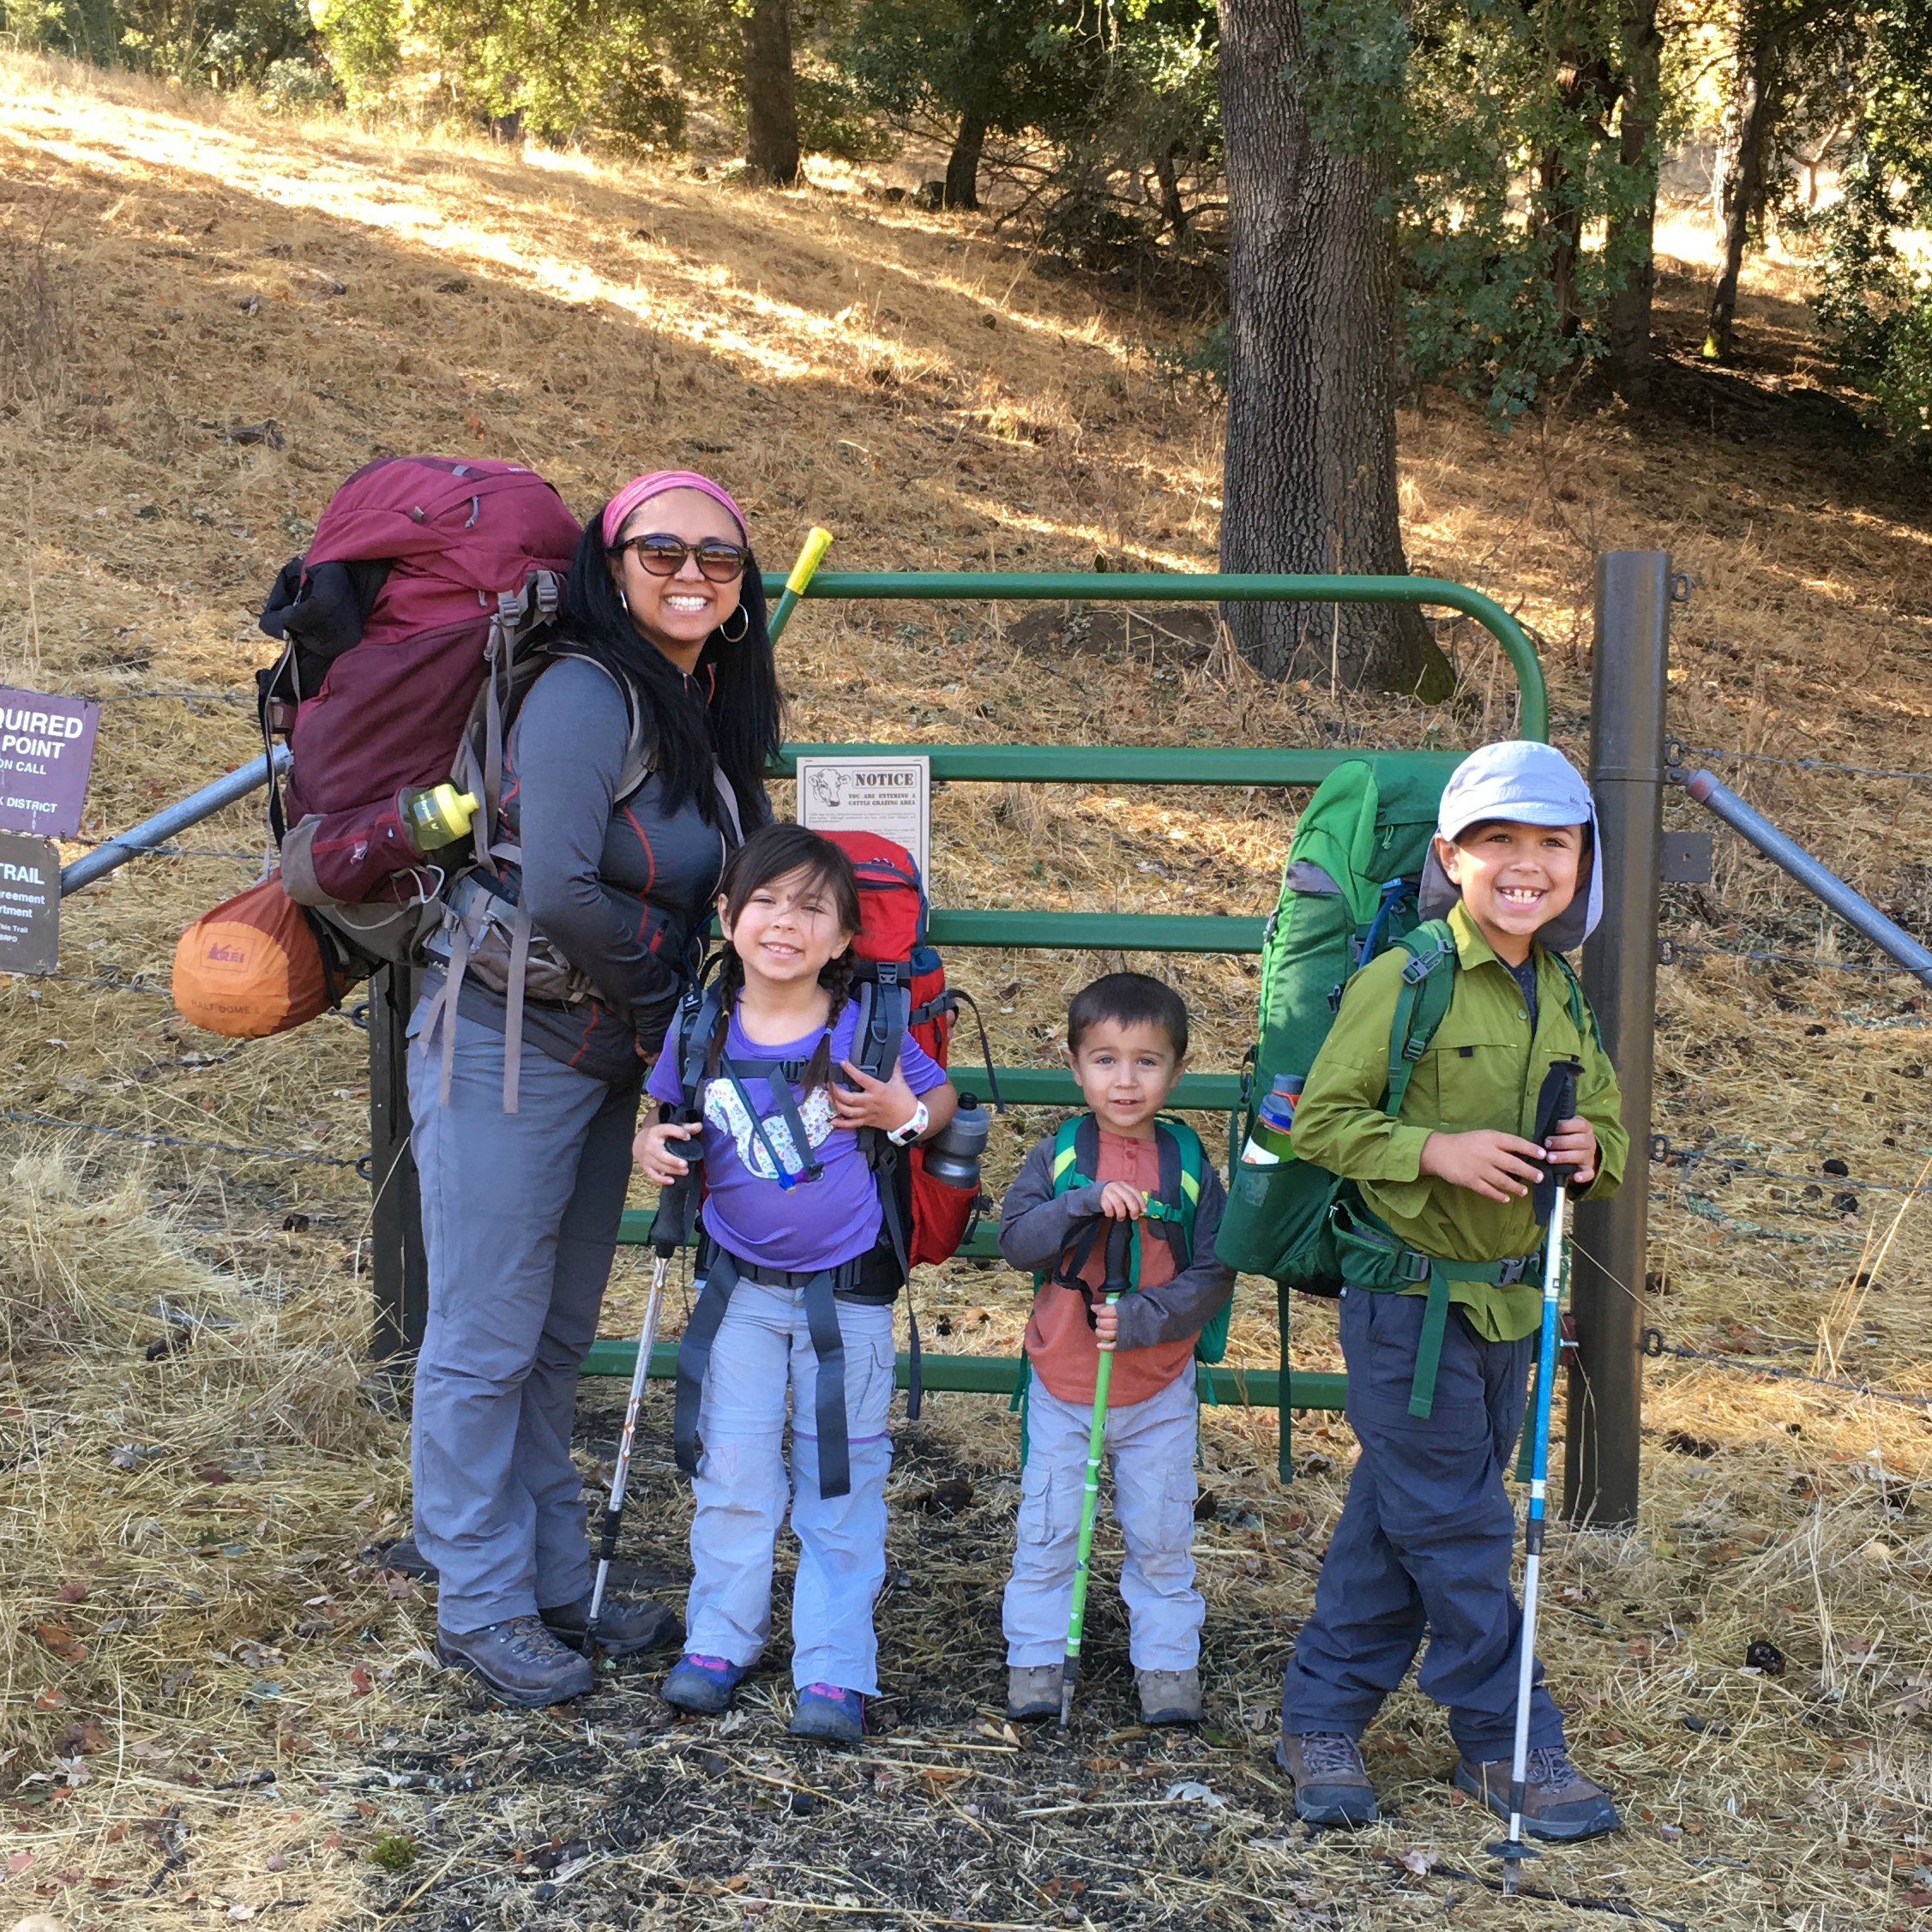 Getting ready to start on the Ohlone Wilderness!